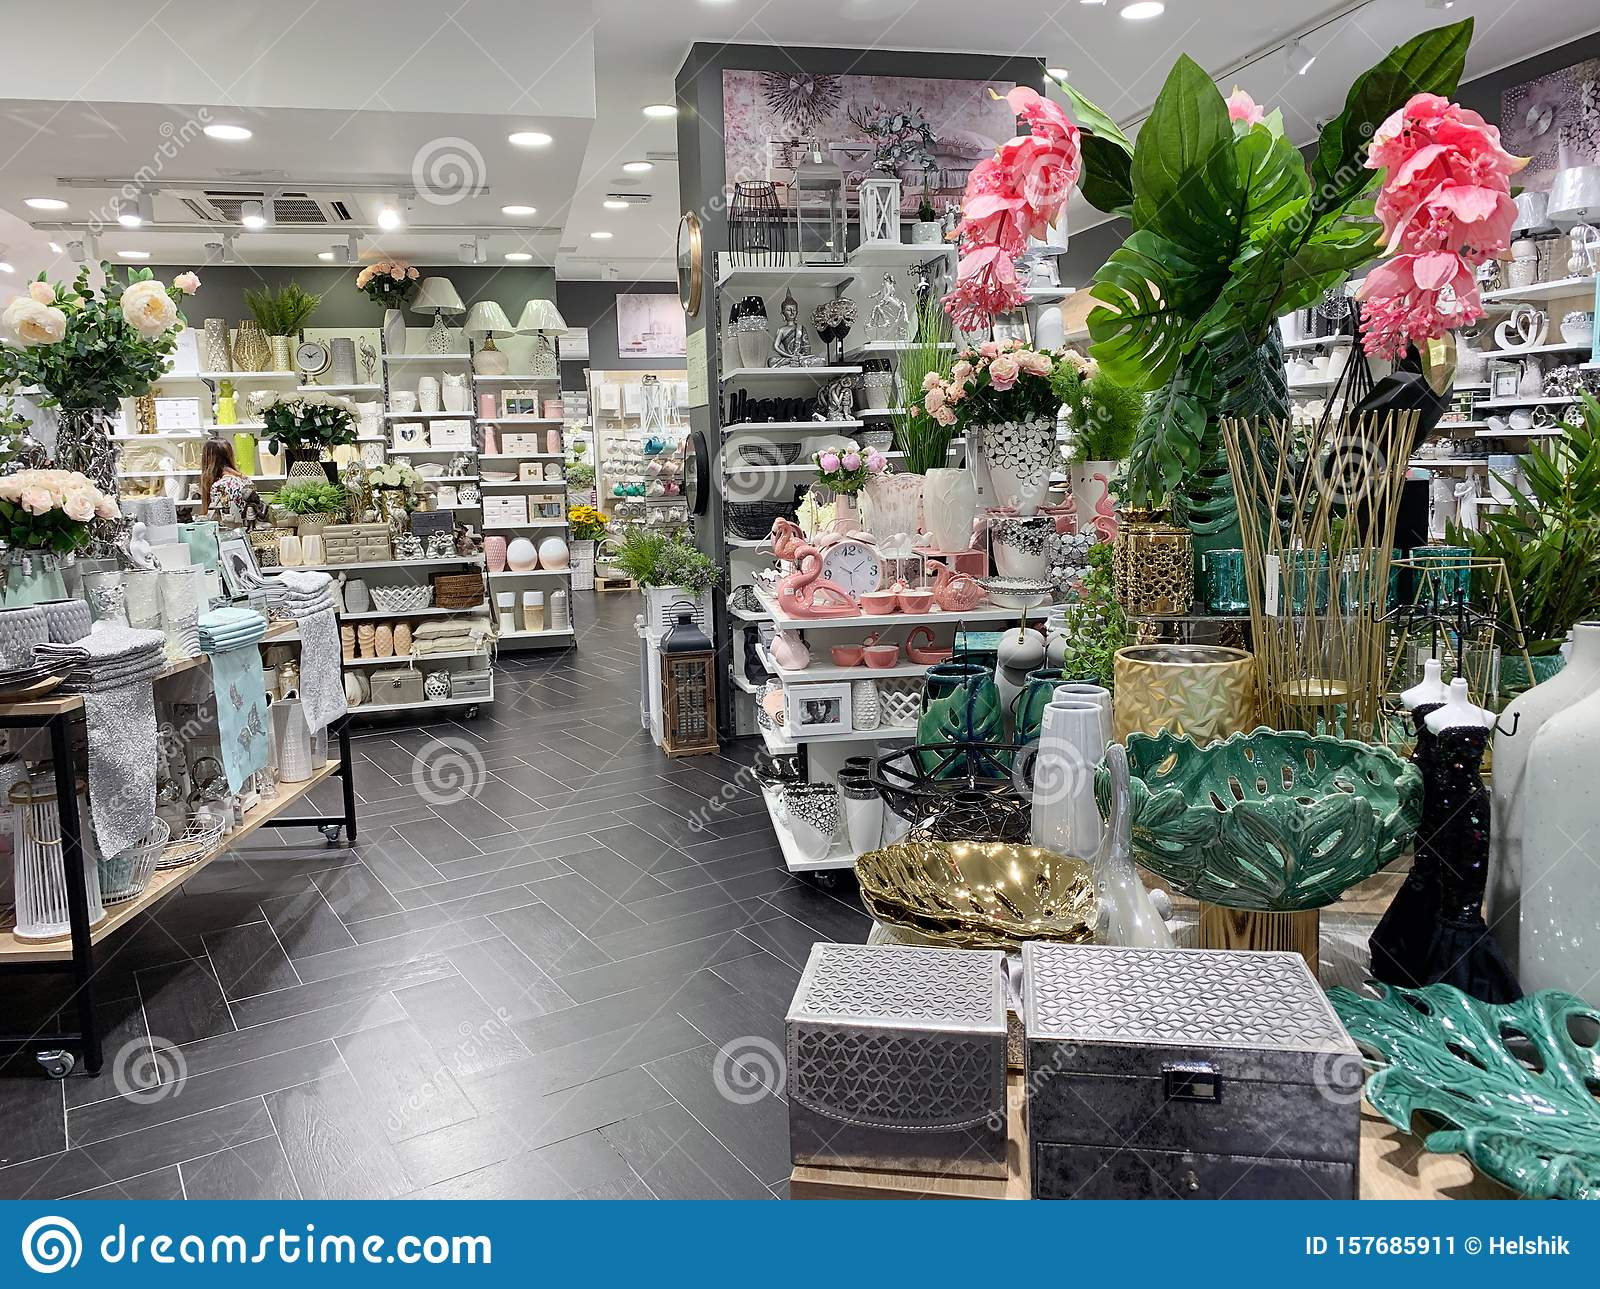 Home Decorations In Decorations Store. Modern Textile Shop For